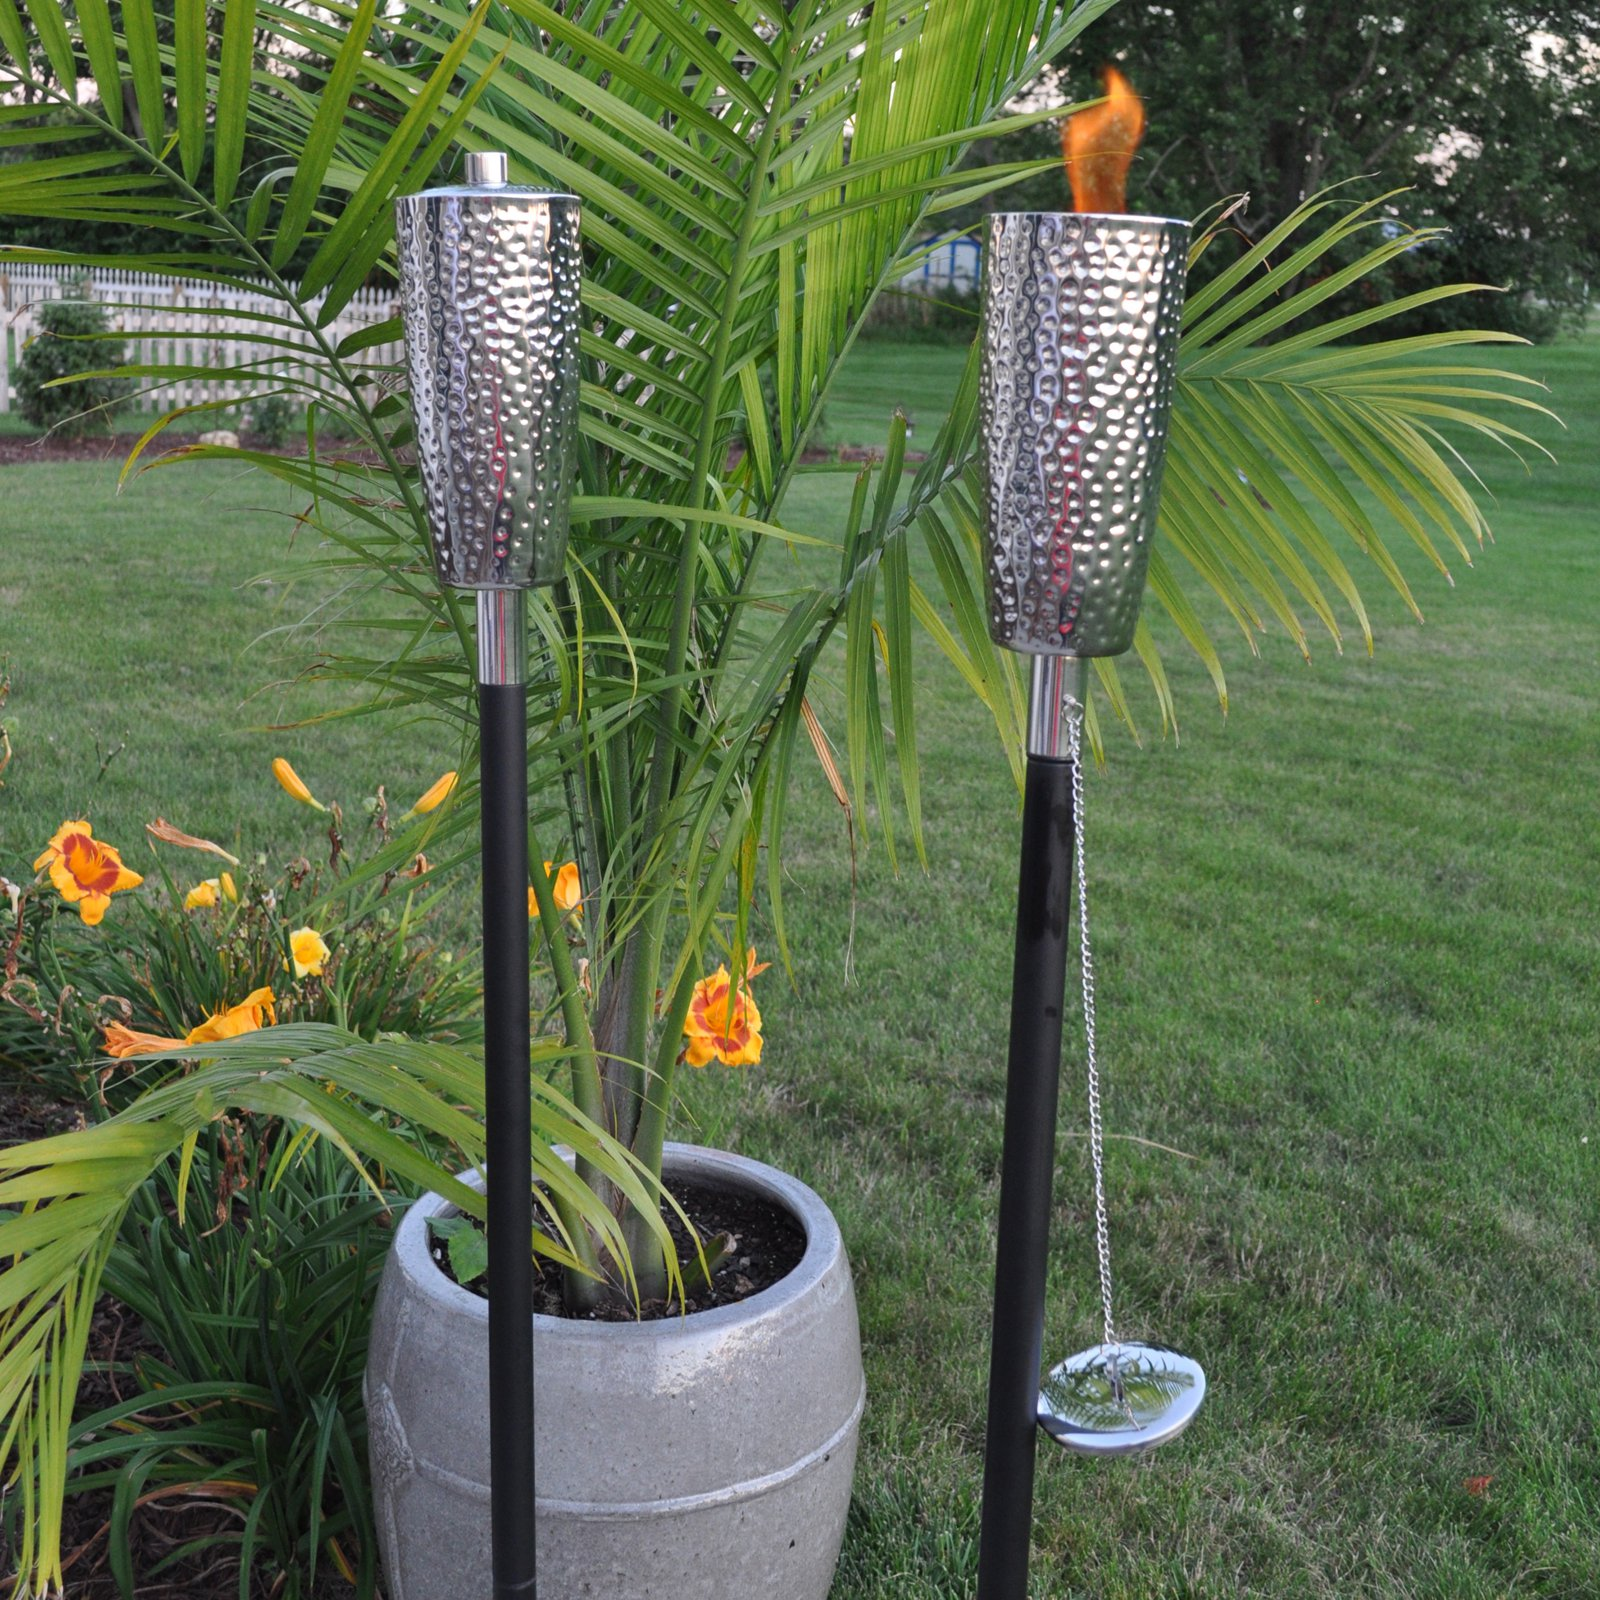 Olympia Jumbo Tiki Torch by Outdoor Torches